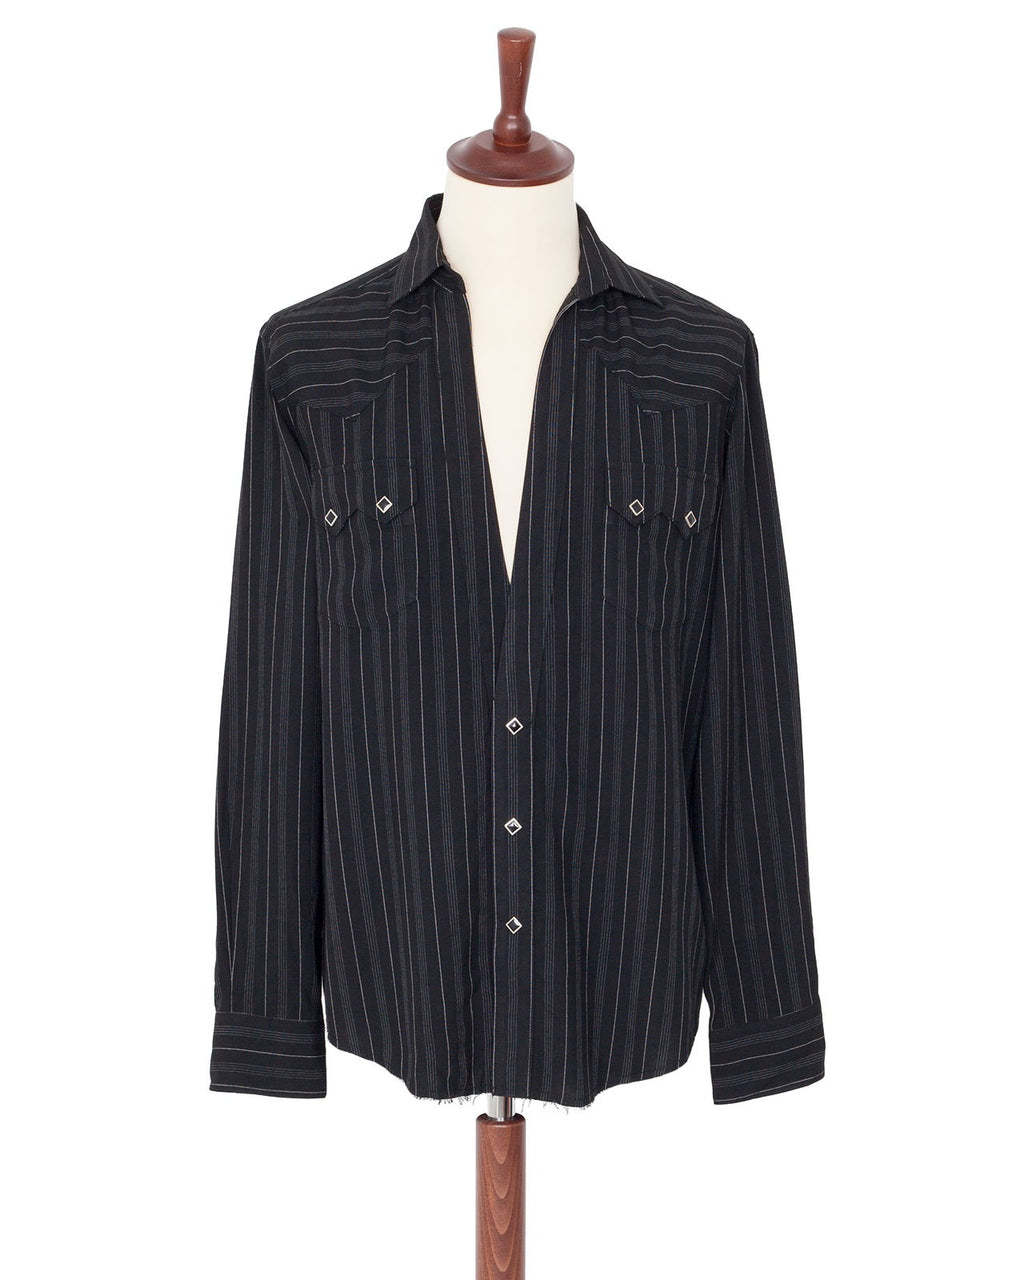 The Letters Western Cutting Shirt, Rayon Stripe